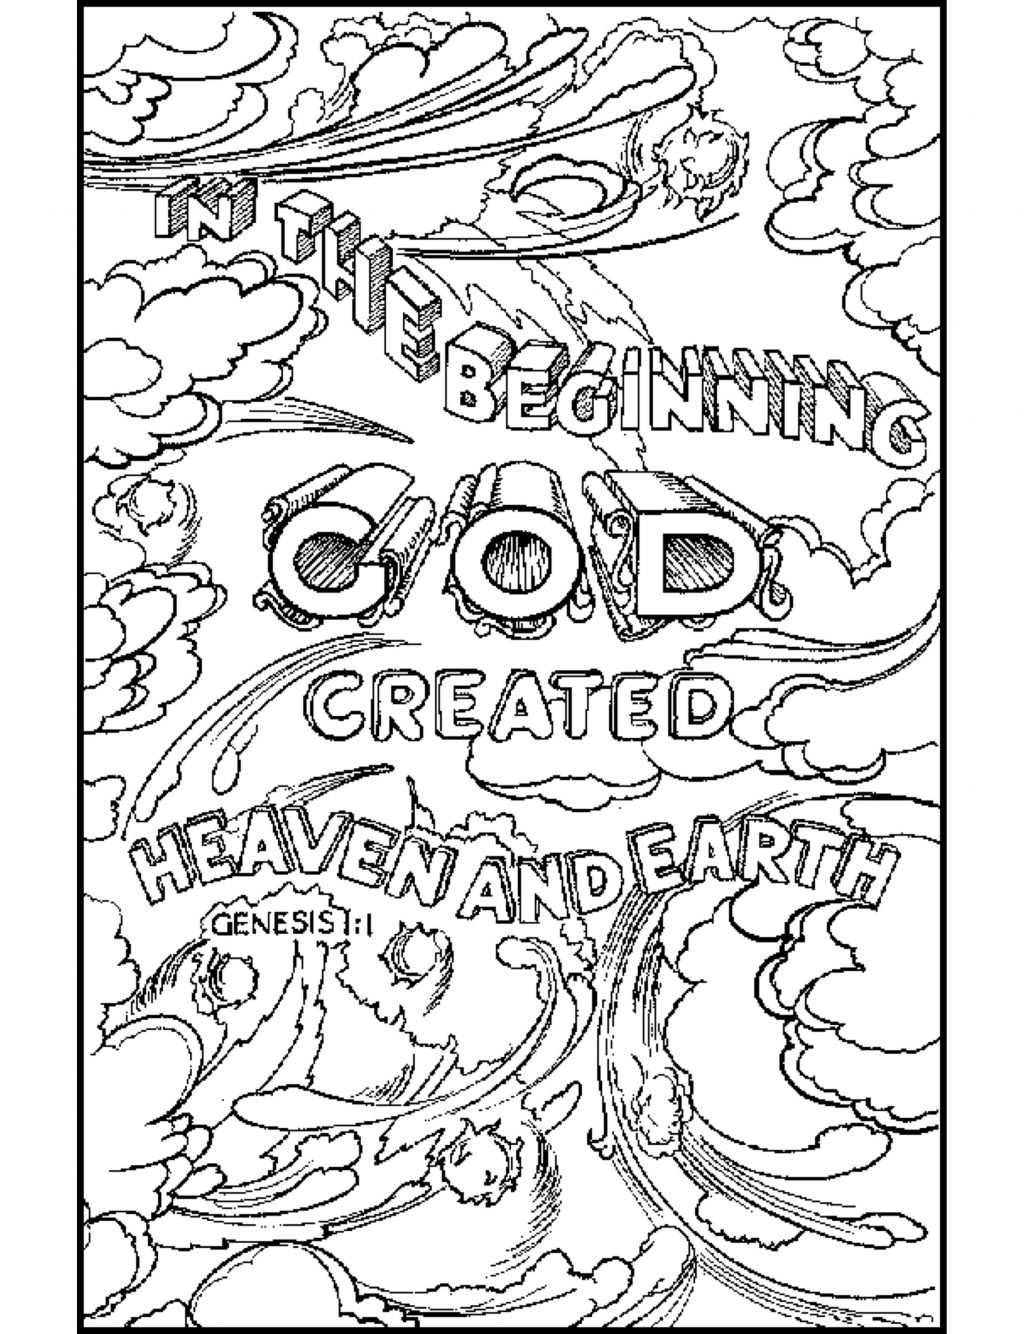 Bible Coloring Pages coloringrocks